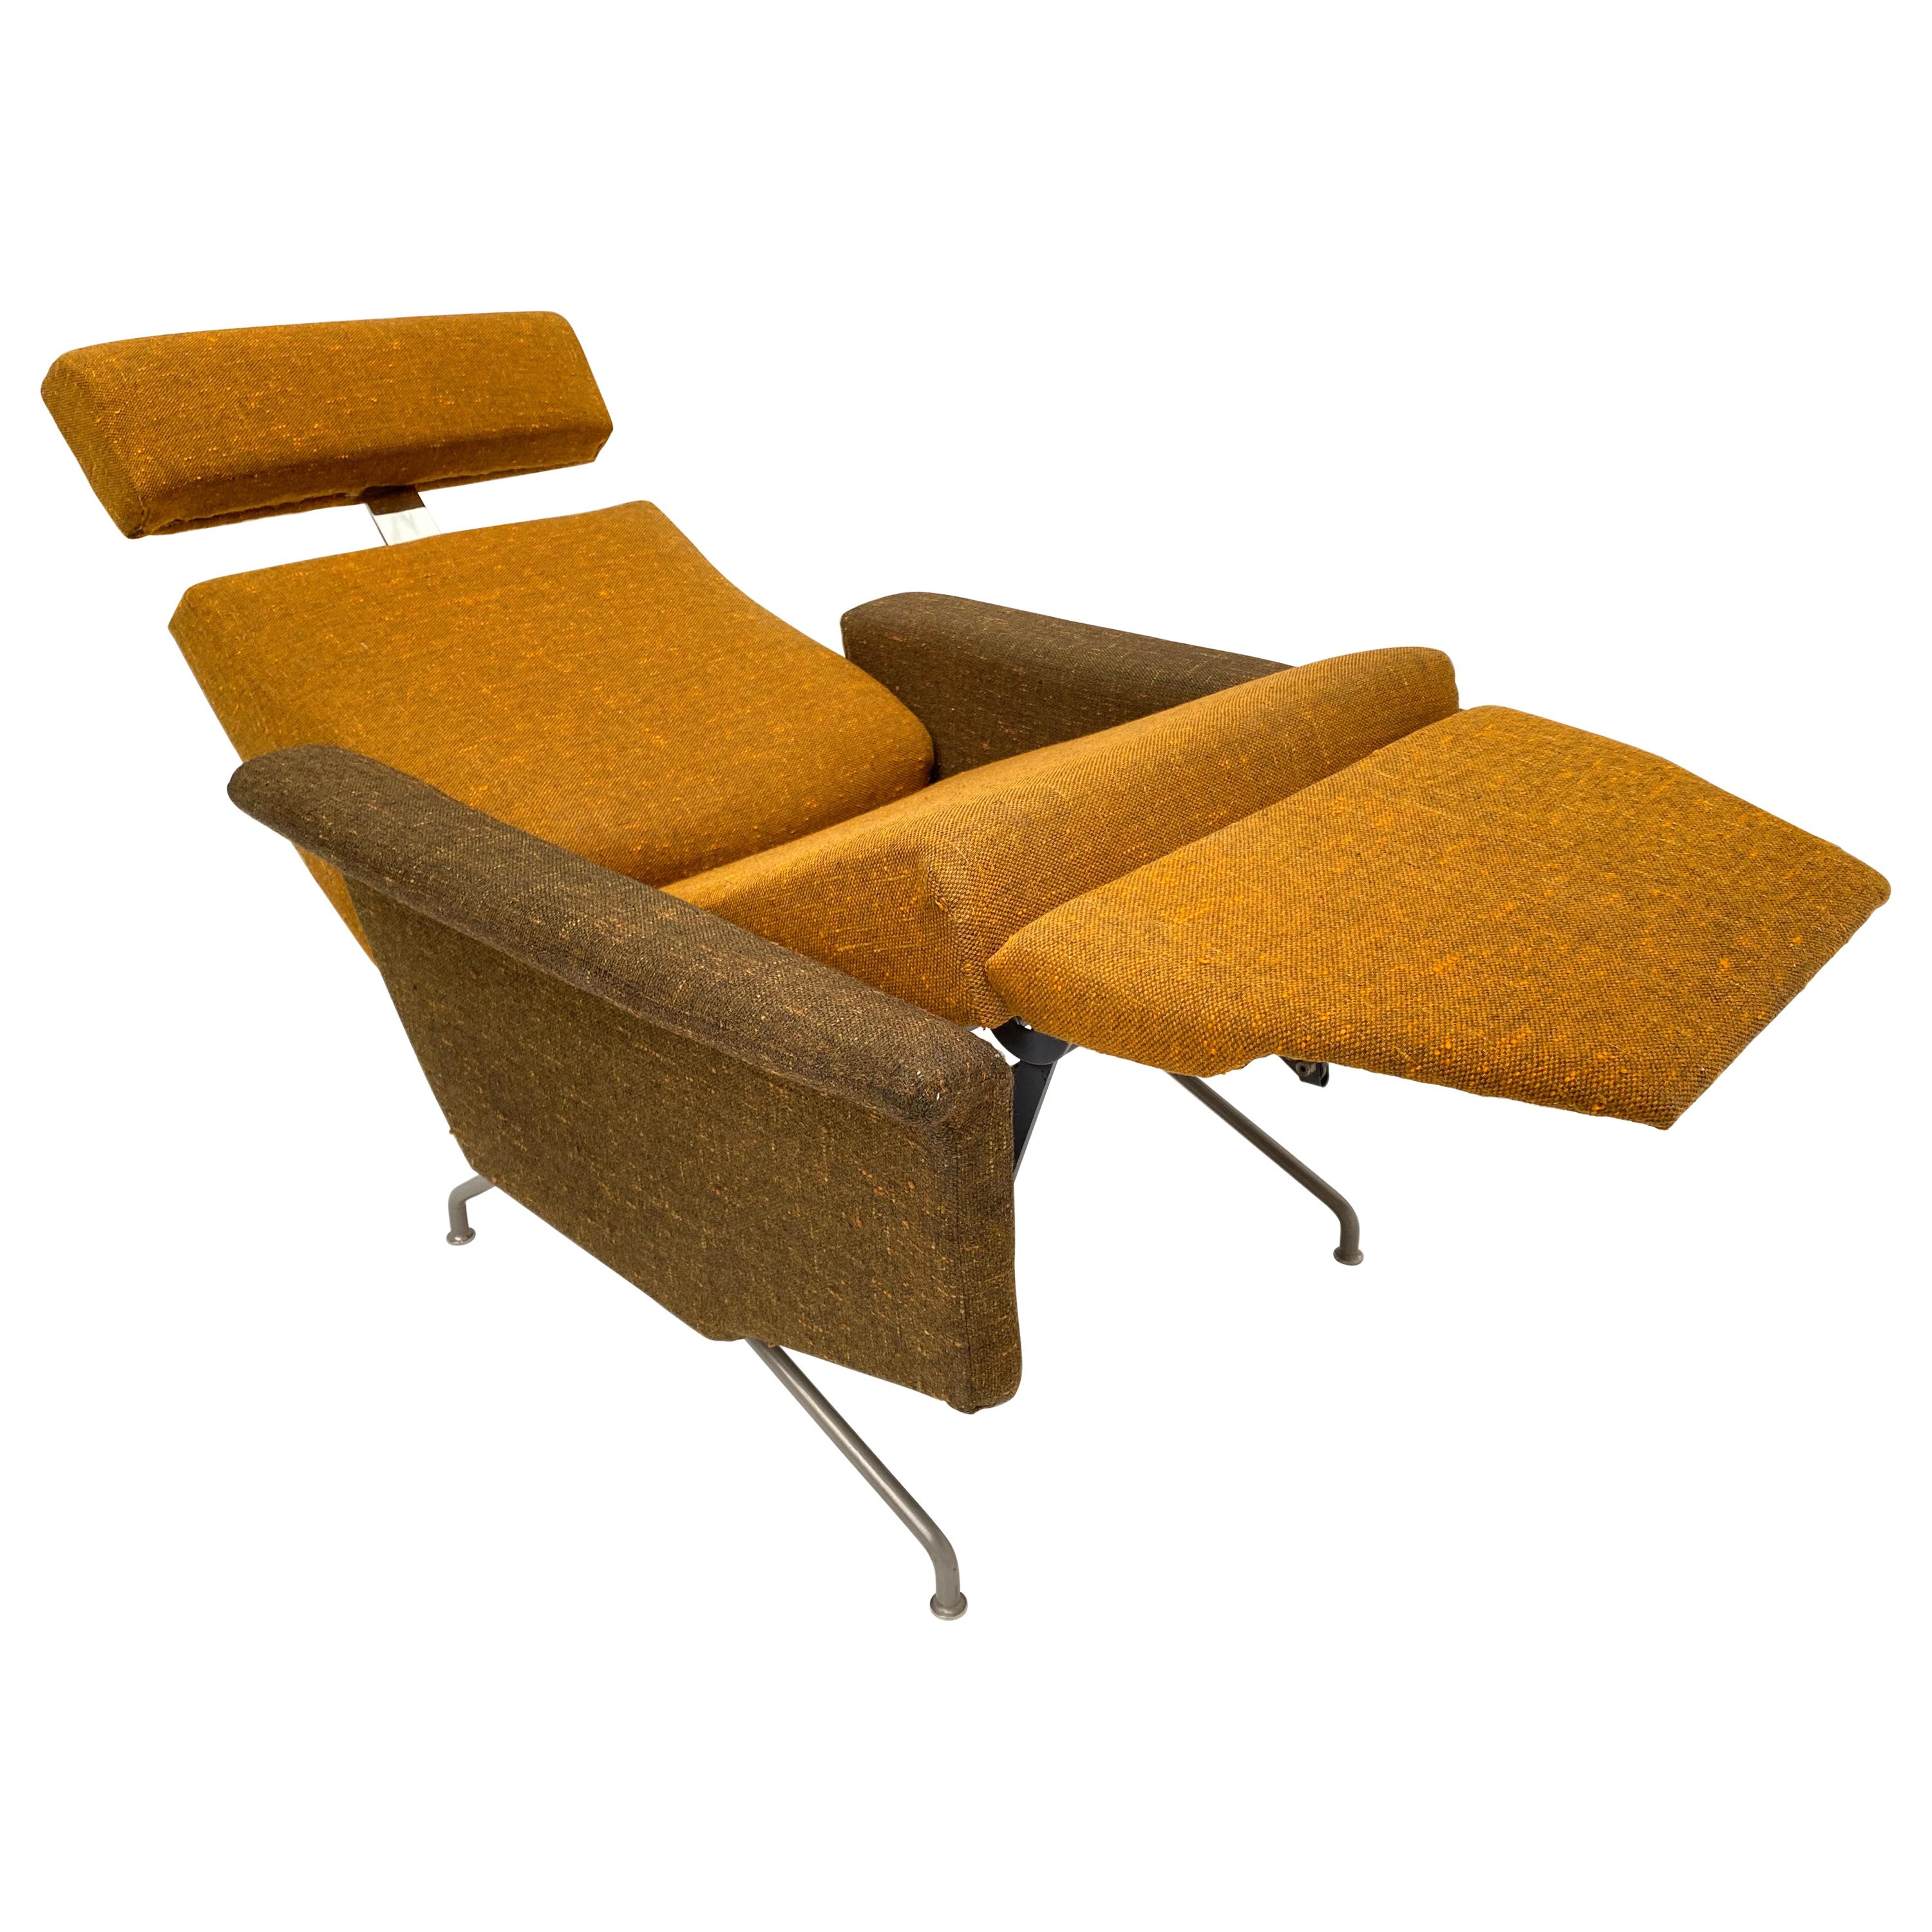 Superb Reclining Lounge Chair by Georges De Rijck for Beaufort Belgium, 1958